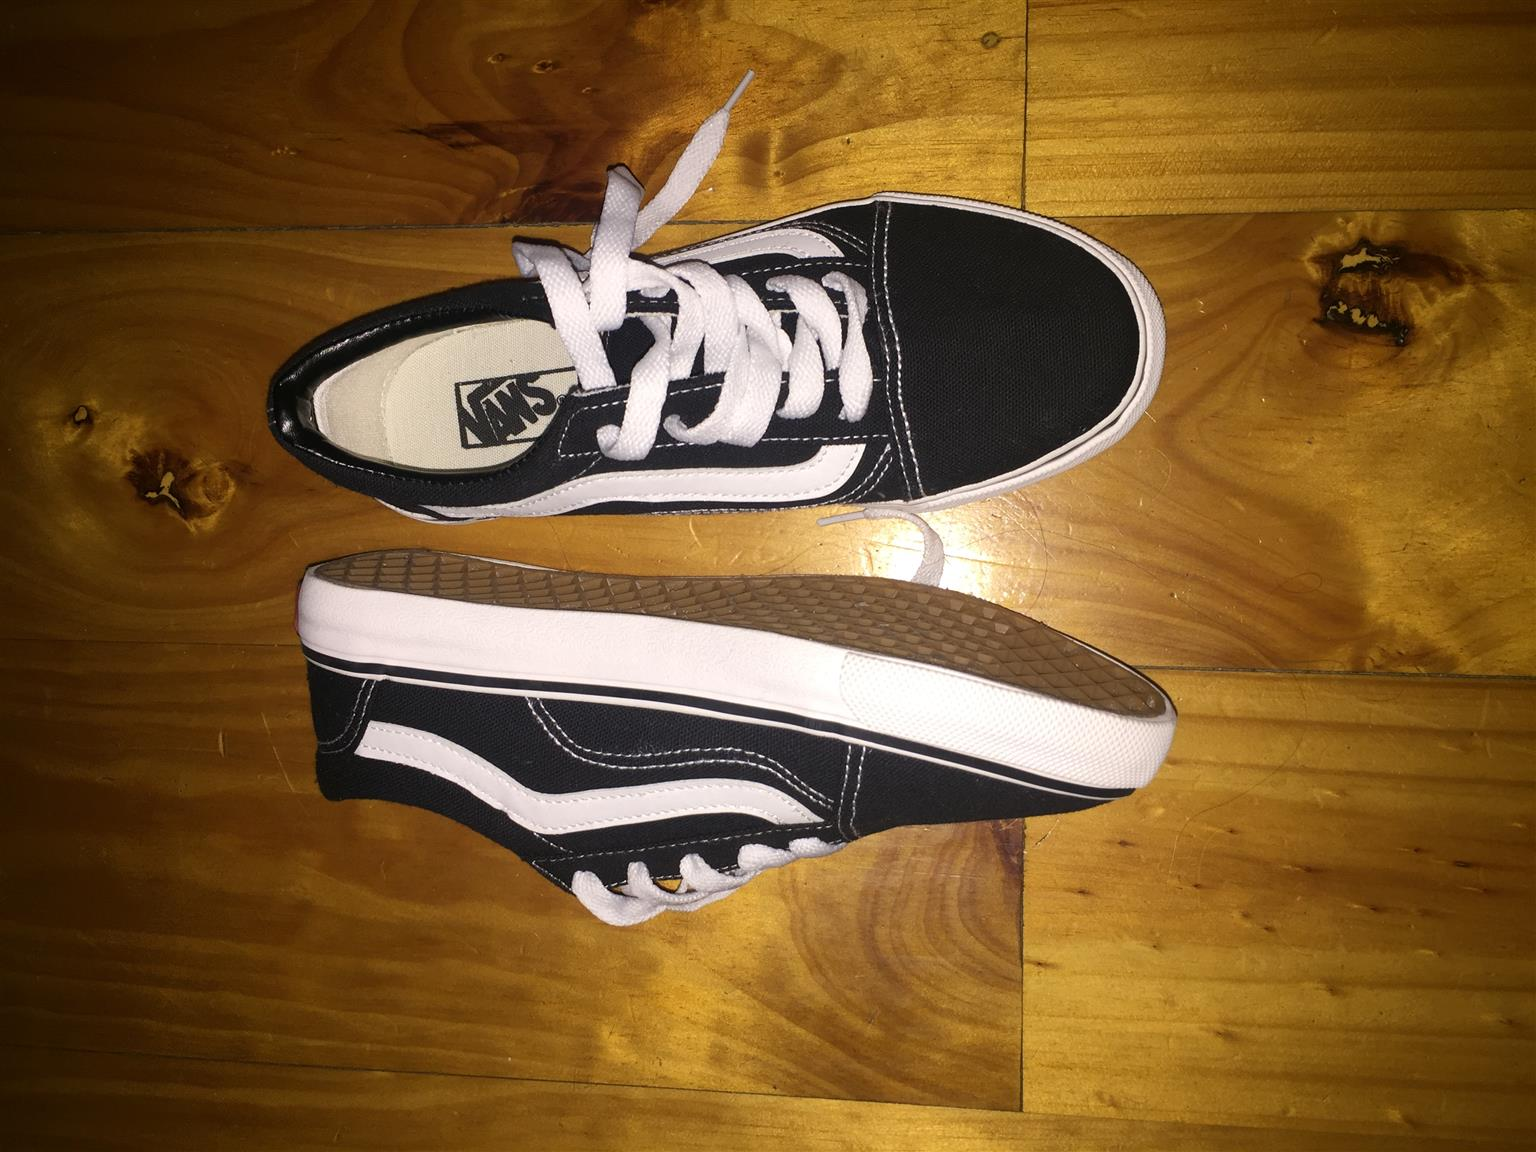 Vans Old Skool size 5